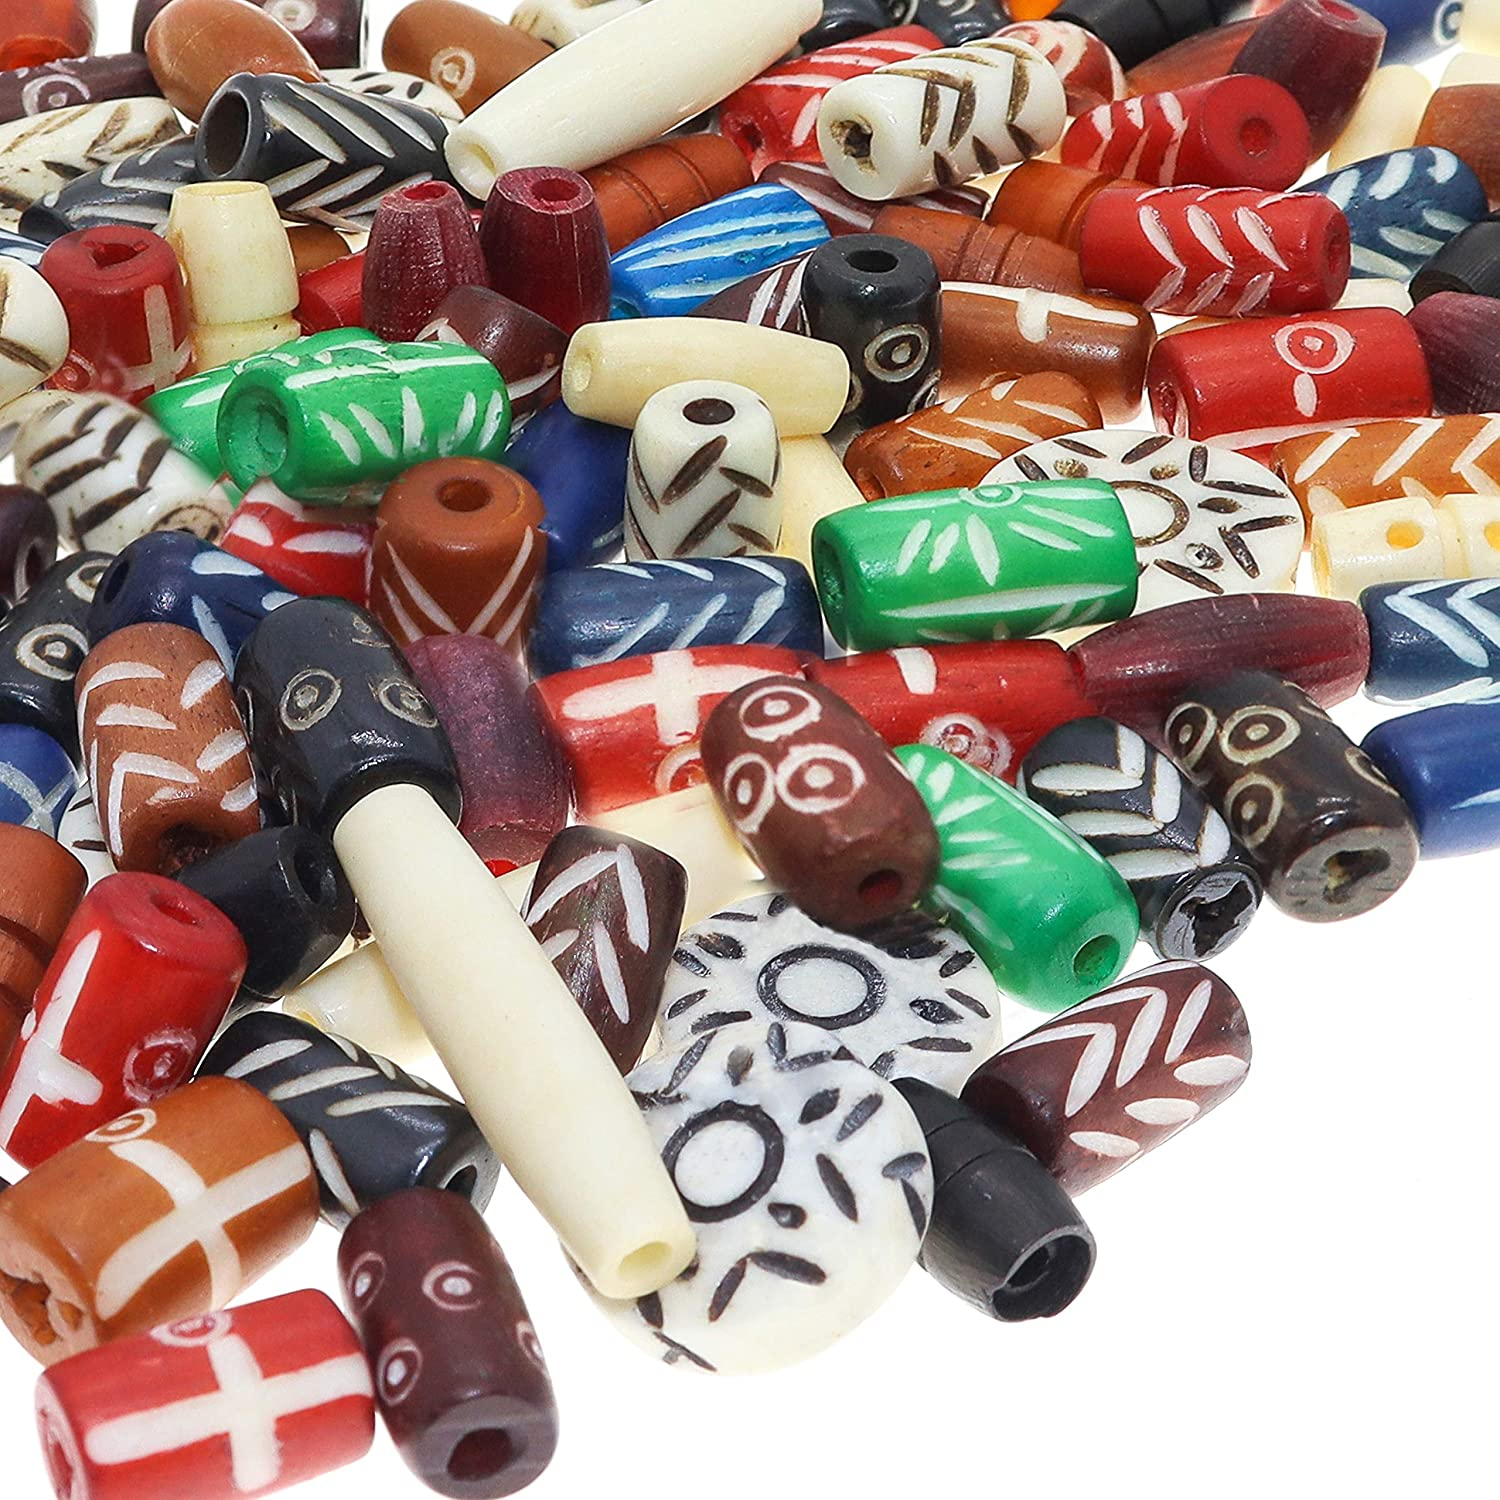 Amazon Com Fun Weevz 120 Pcs Bone Beads For Jewelry Making Adults Large Colorful Natural Ox Bone Beads Native American African Beads Bulk Assorted Craft Buffalo Bone Hairpipe Bead Supplies Arts Crafts